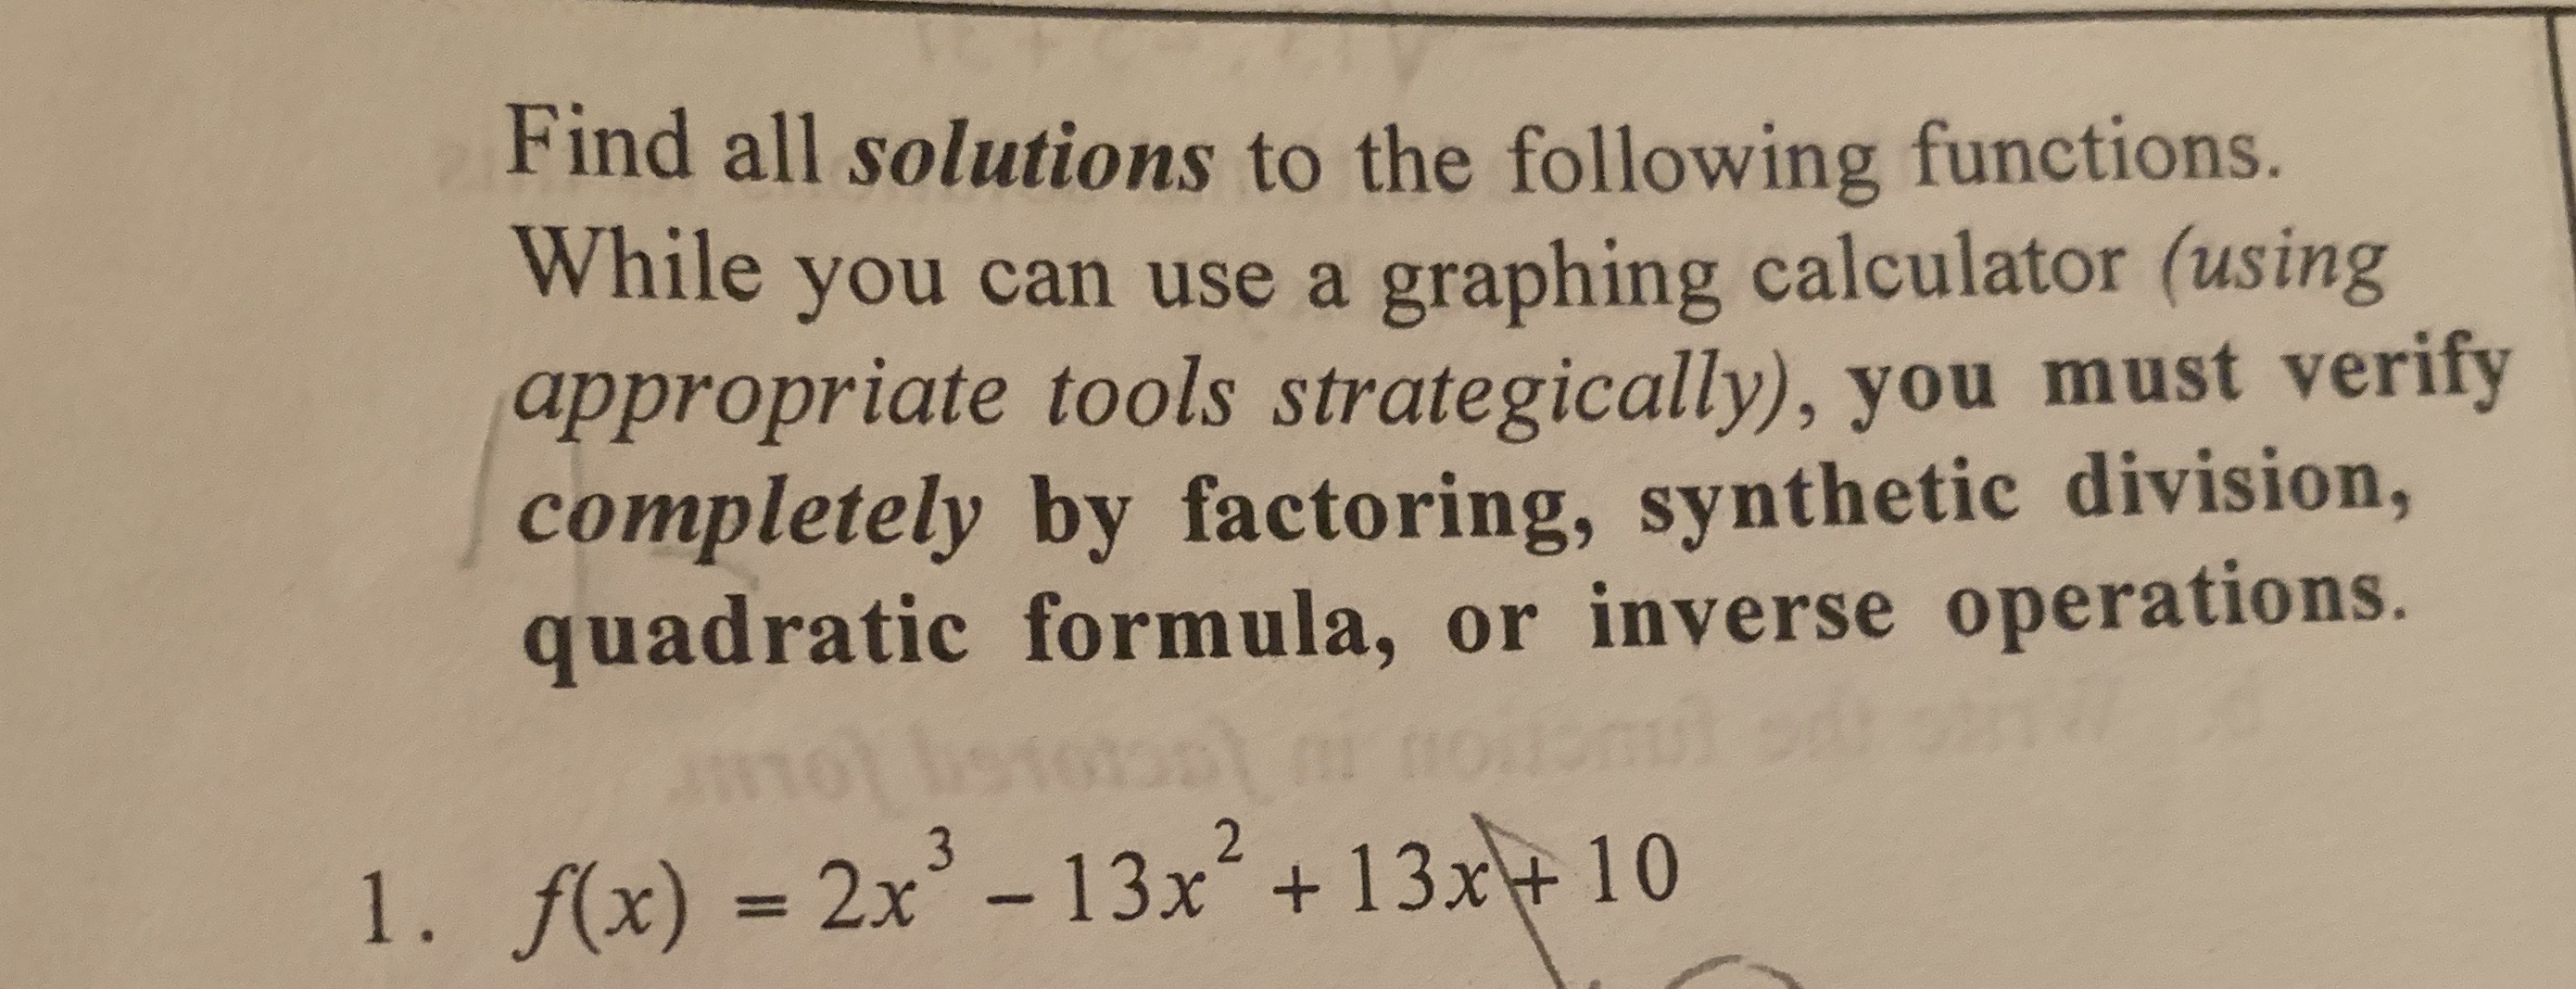 Find all solutions to the following functions. While you can use a graphing calculator (using appropriate tools strategically), you must verify completely by factoring, synthetic division, quadratic formula, or inverse operations. l . /(x) = 2x3-13x2 + 13x + 10